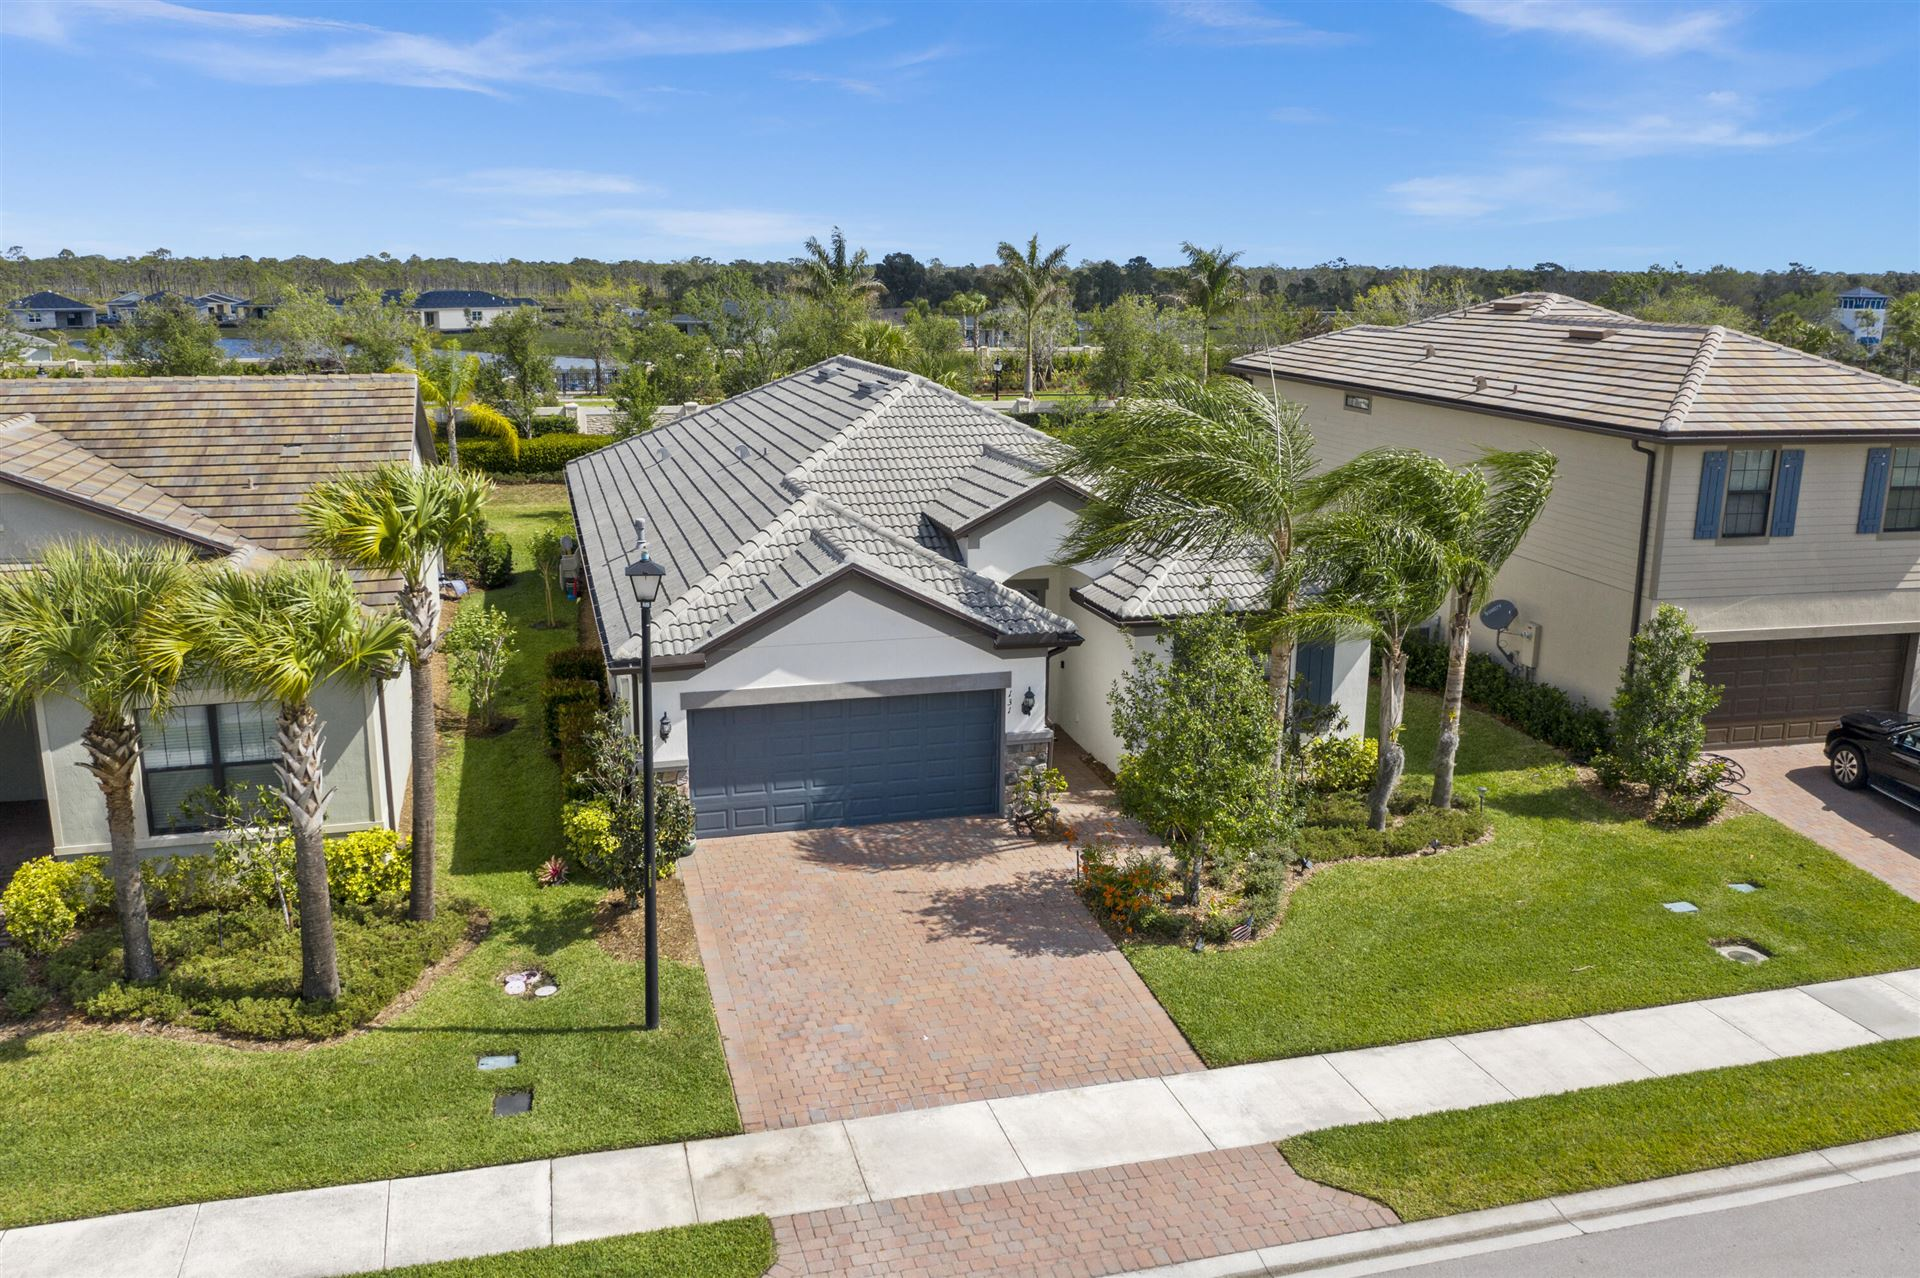 131 SE Courances Drive, Port Saint Lucie, FL 34984 - #: RX-10703868